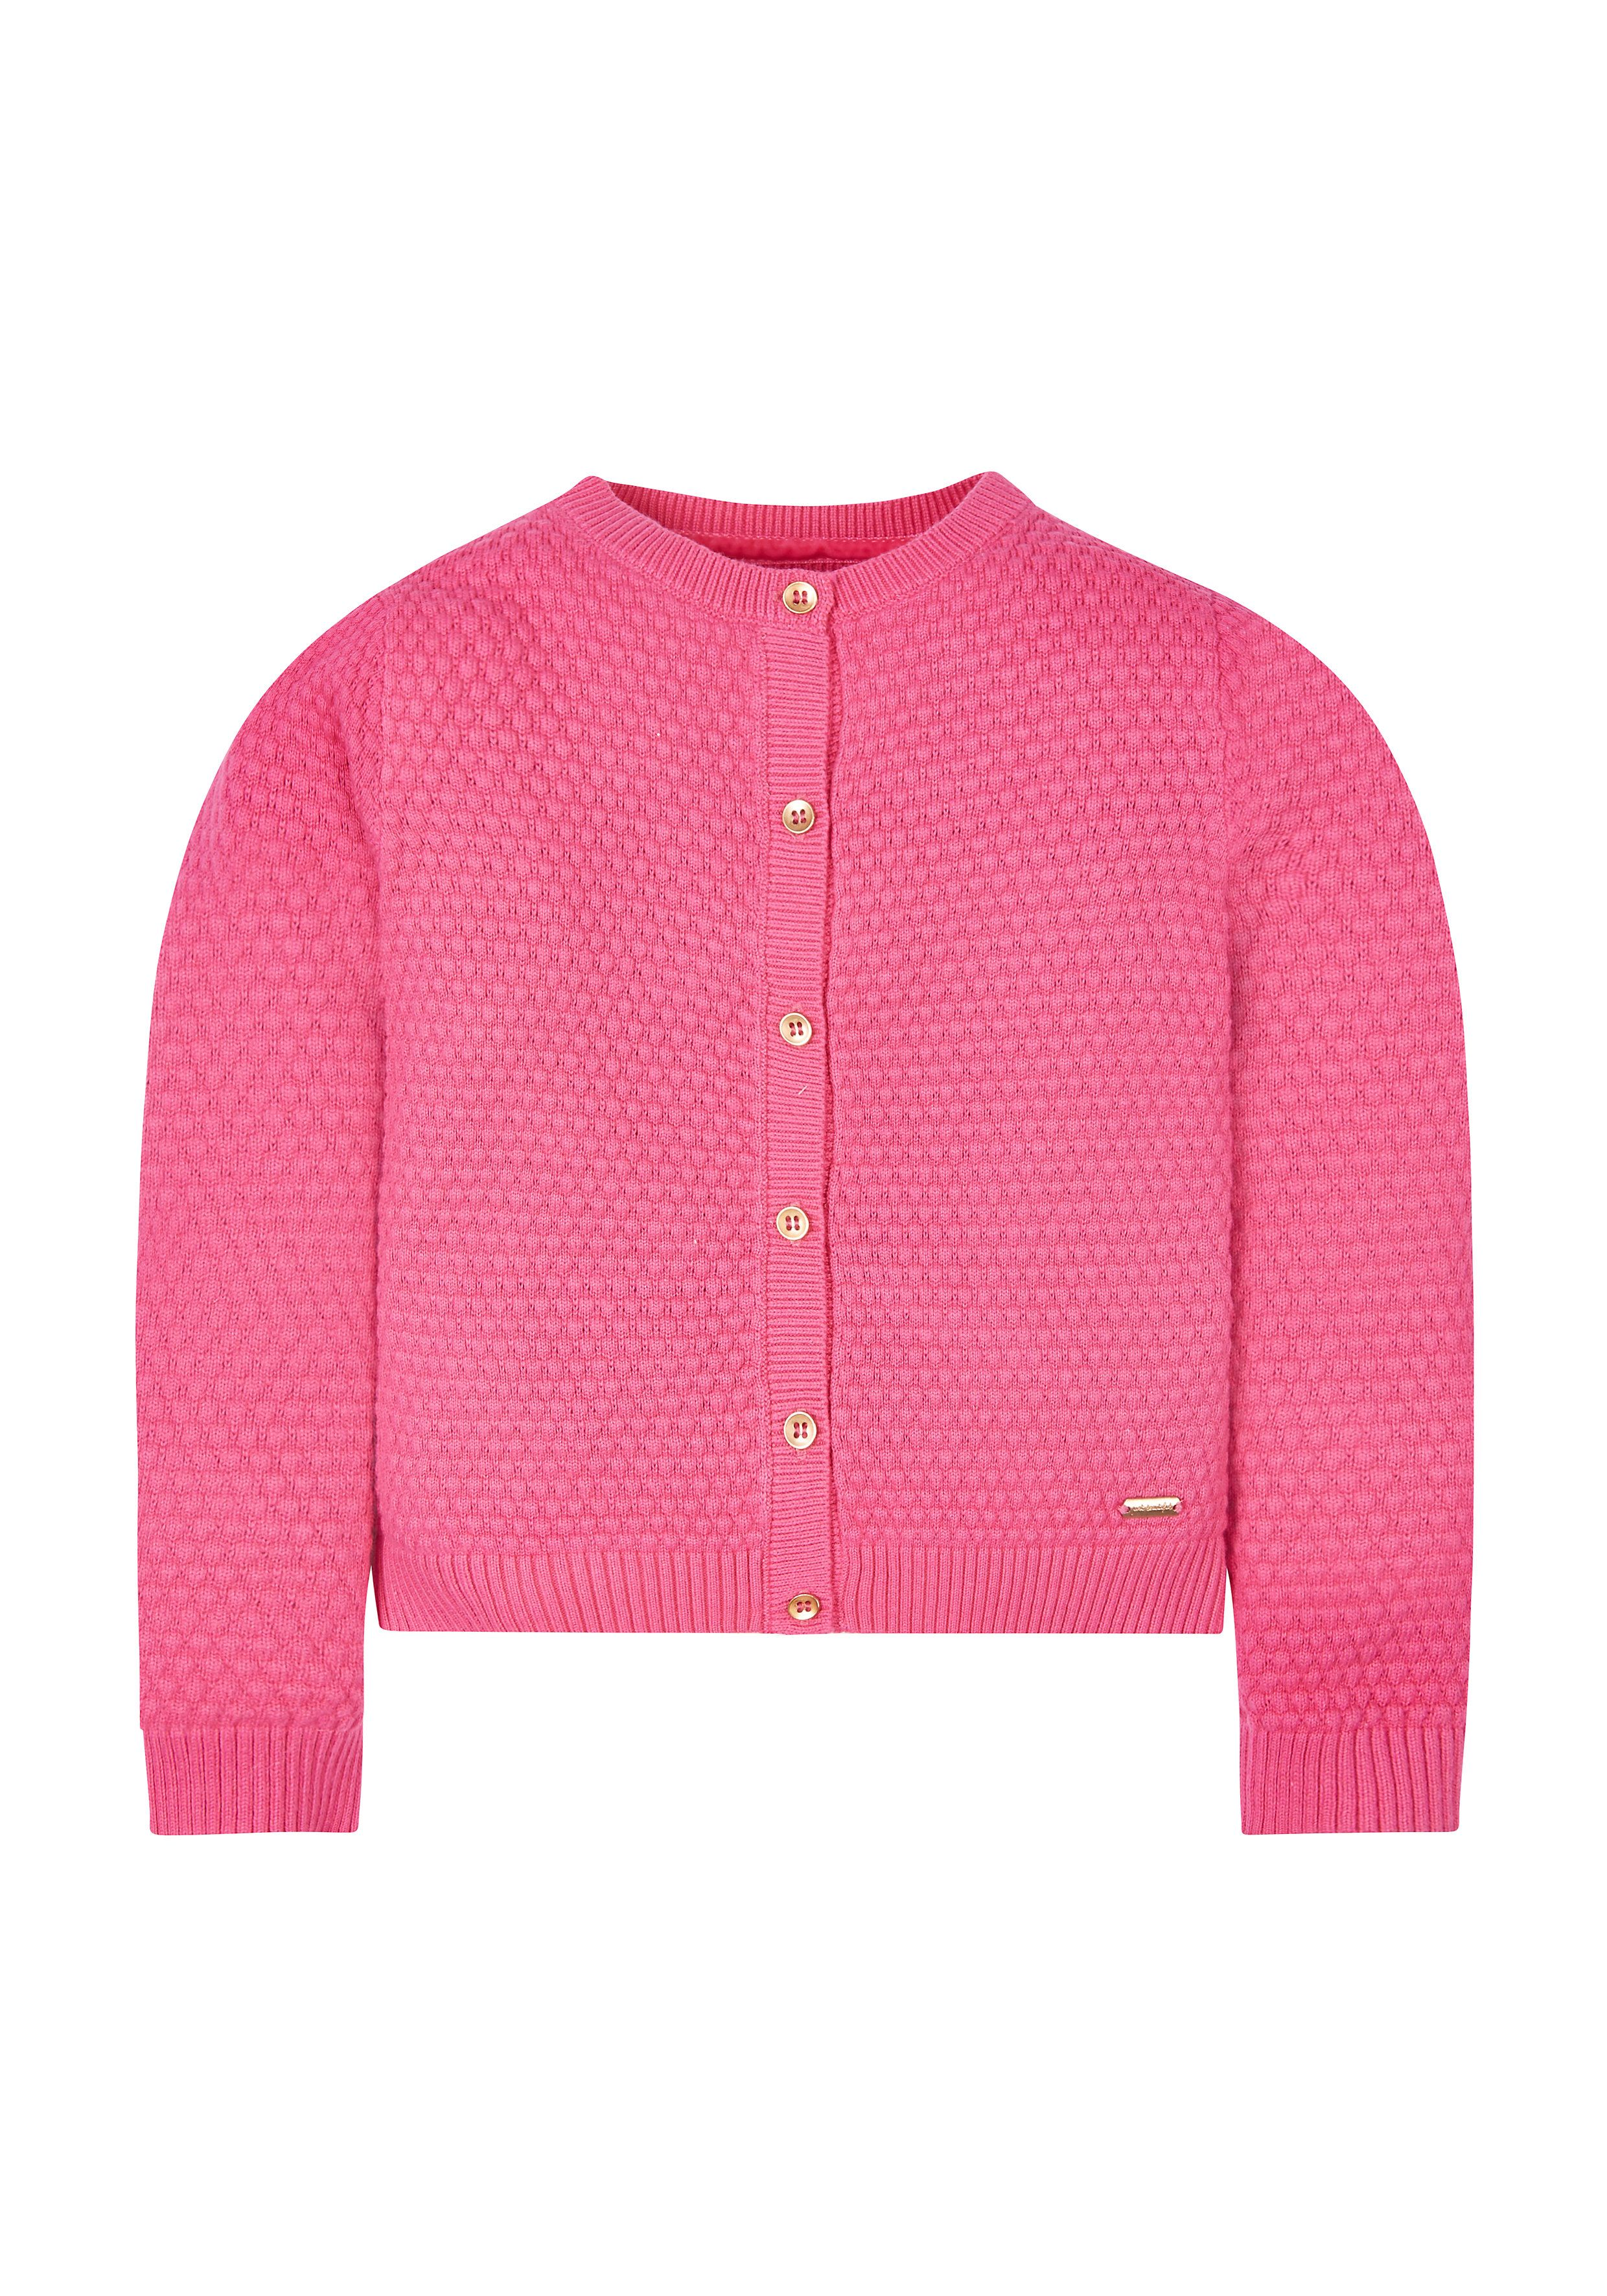 Mothercare   Pink Bubble Knit Cardigan